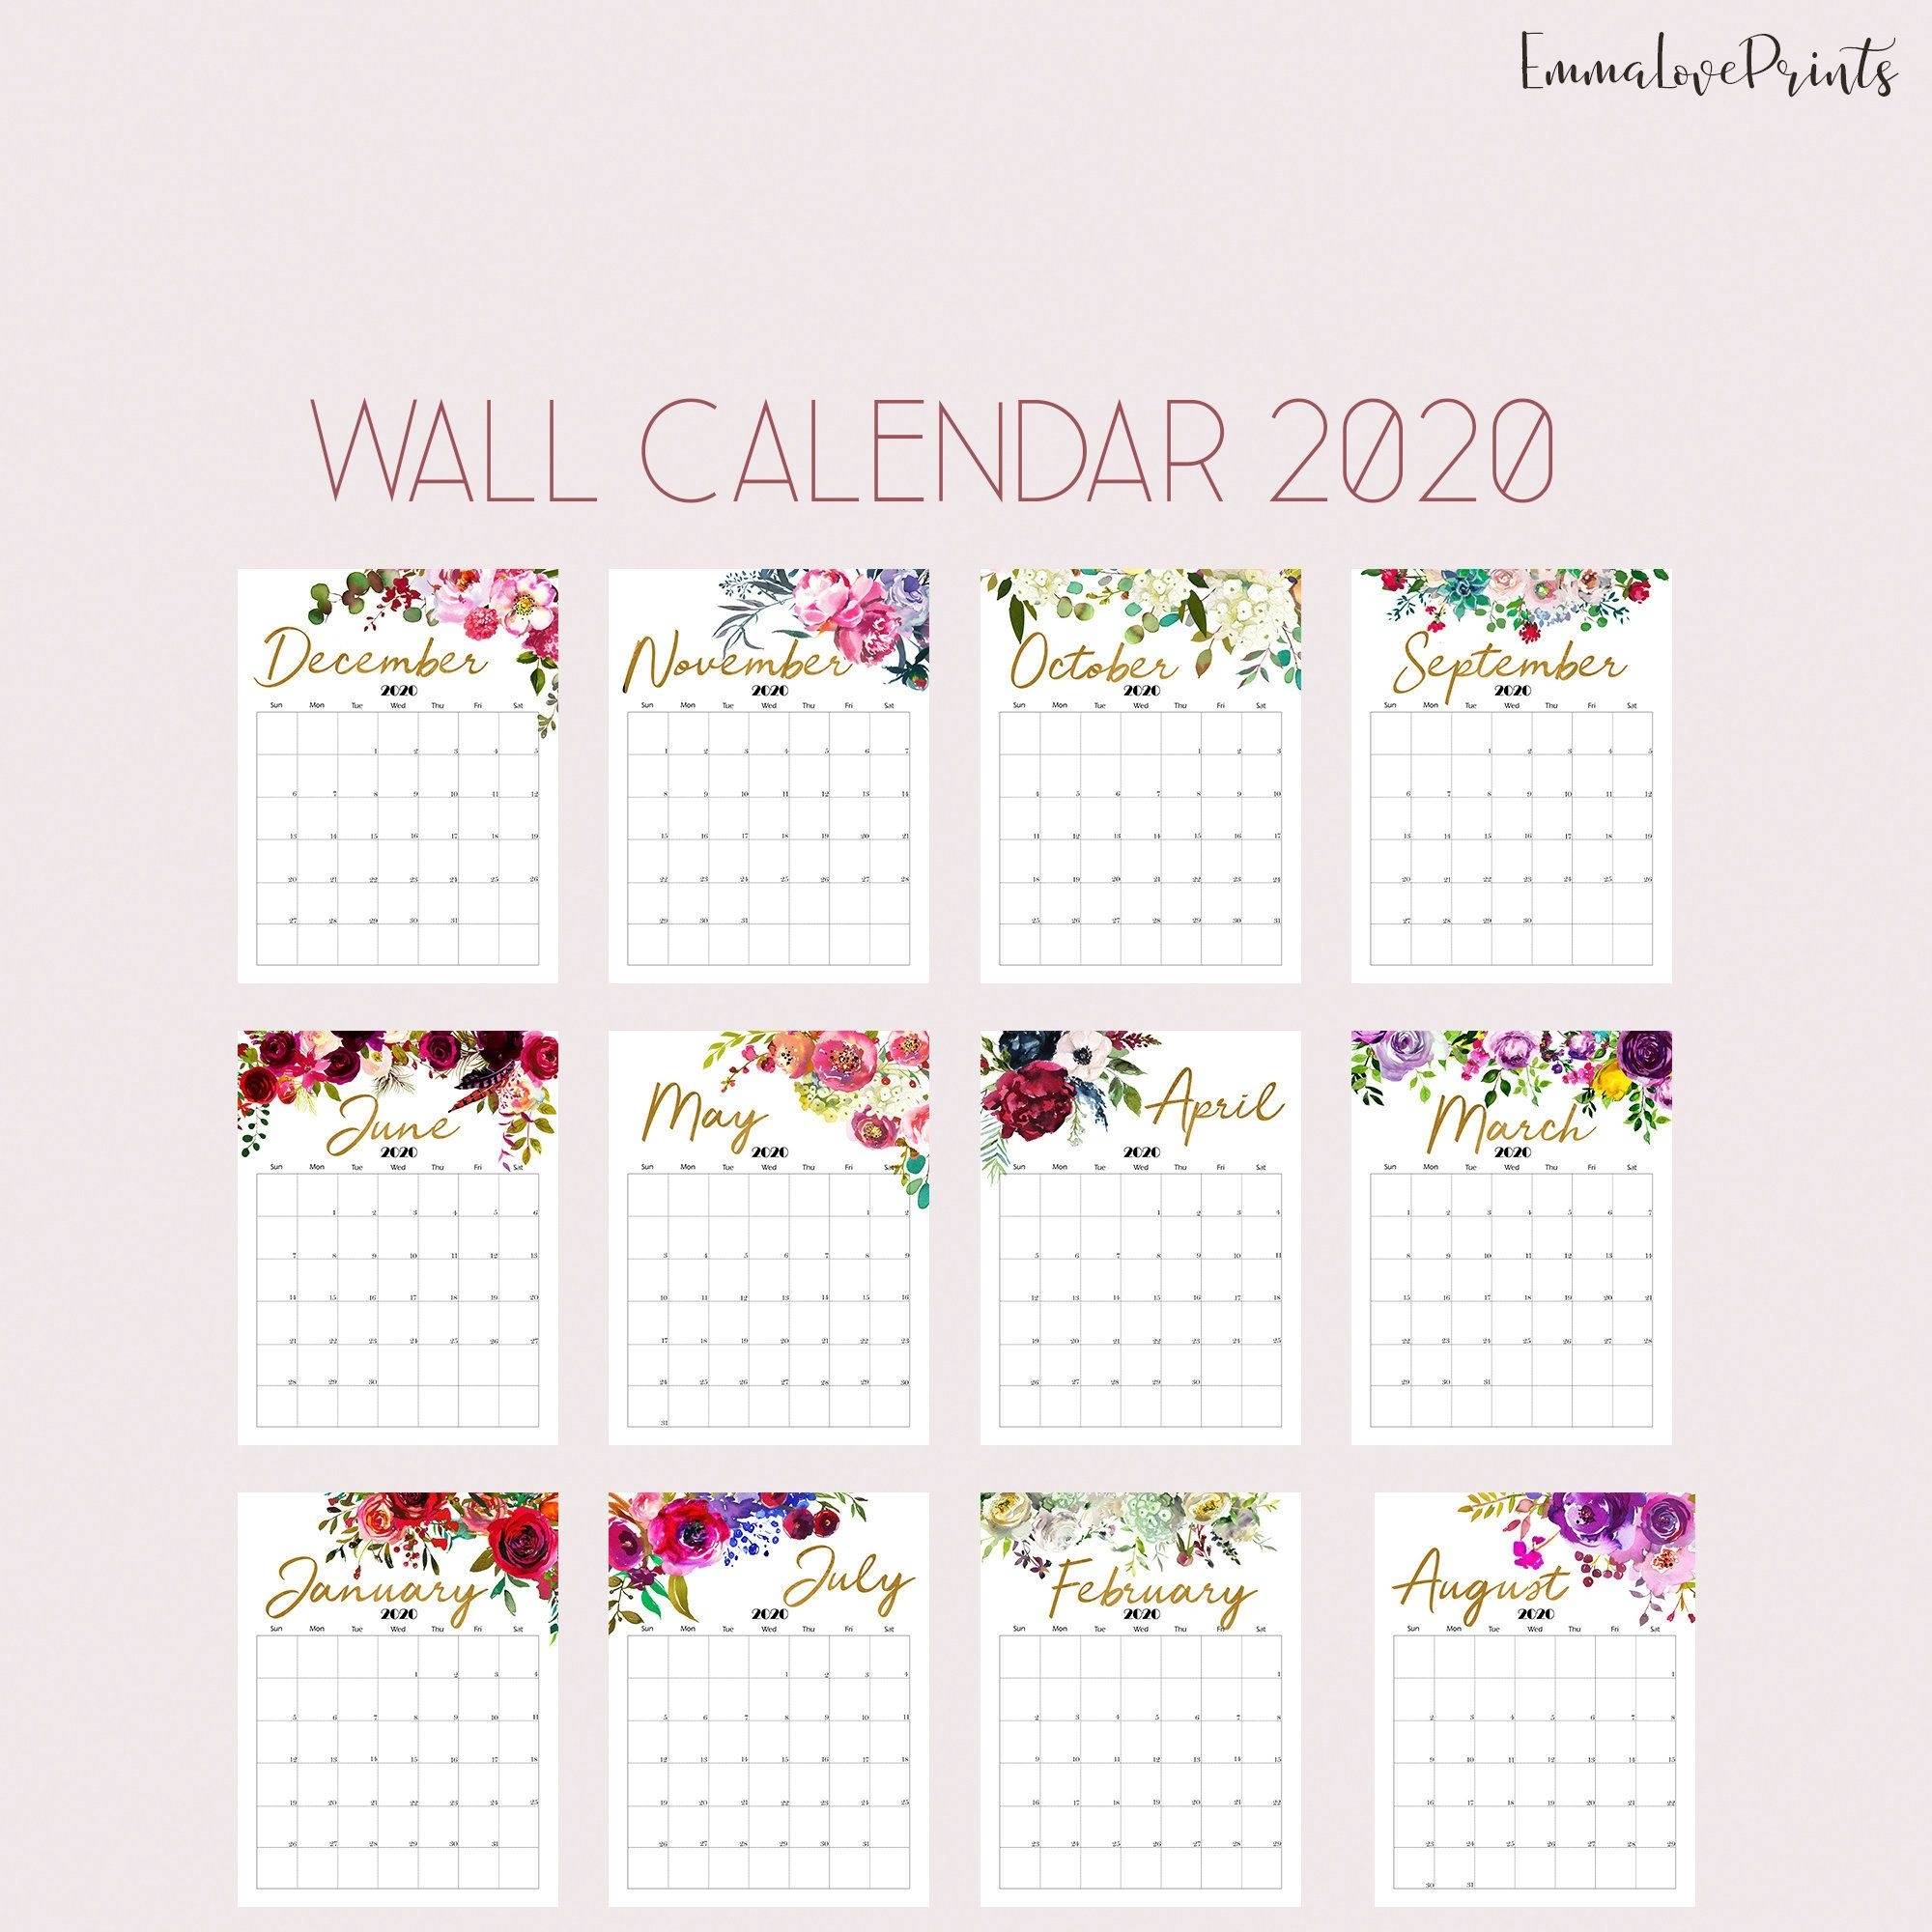 Printable Calendar 2020 Wall Calendar 2020 Desk Calendar, Floral for Homeschool Year At A Glance 2019-2020 Botanical Calendar Printable Free